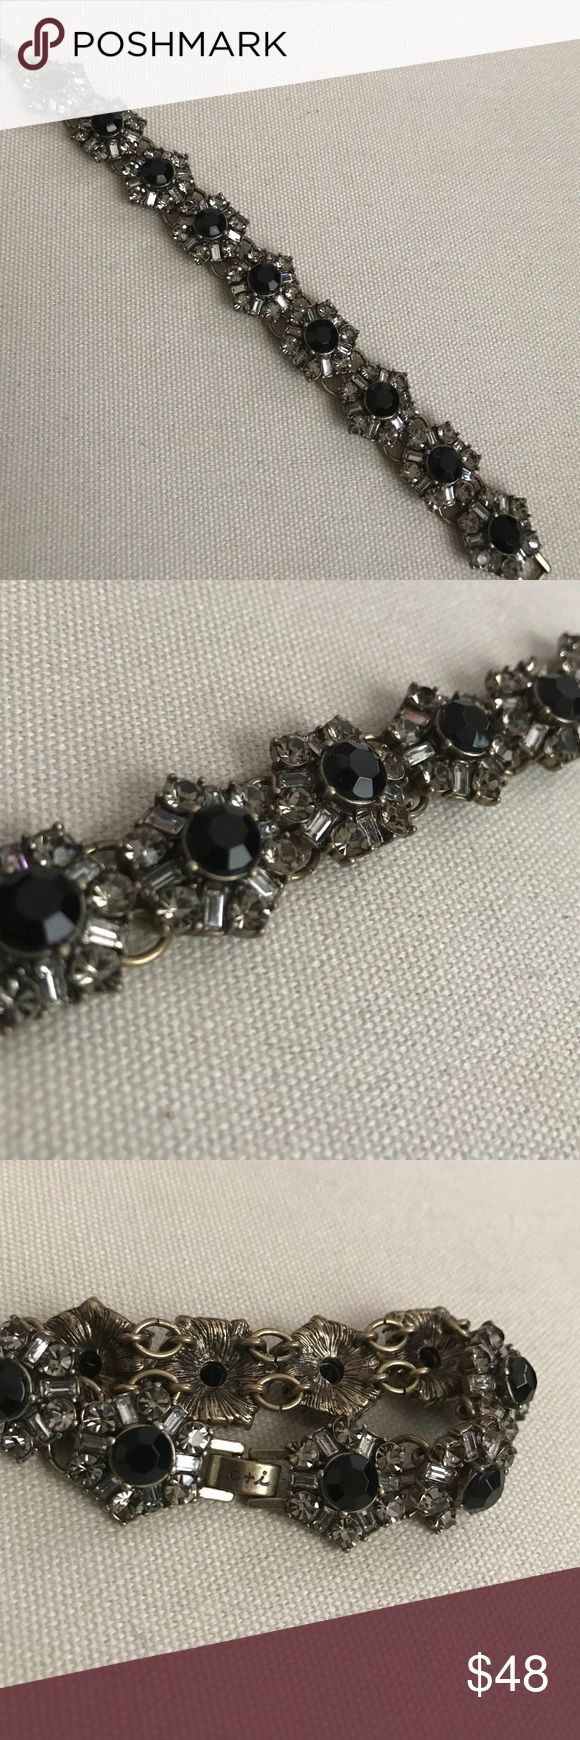 Chloe and Isabel Art Deco fanfare bracelet Chloe and Isabel Art Deco fanfare bracelet. Features black stones with crystal accents. A beautiful touch to any occasion. No trades please. Chloe + Isabel Jewelry Bracelets